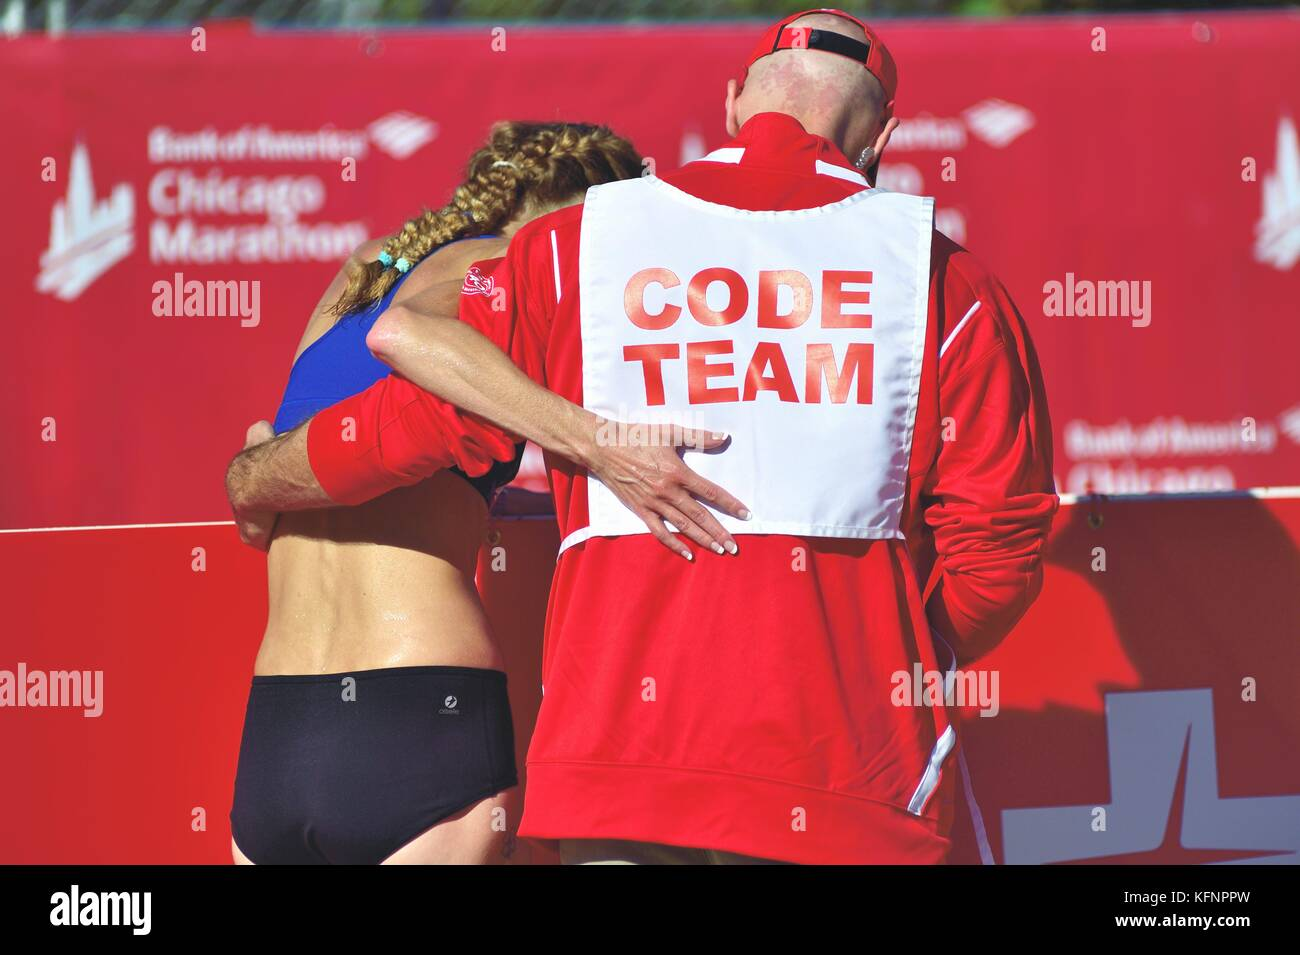 Just after crossing the finish line at the 2017 Chicago Marathon, a competitor needed assistance to leave the course. - Stock Image